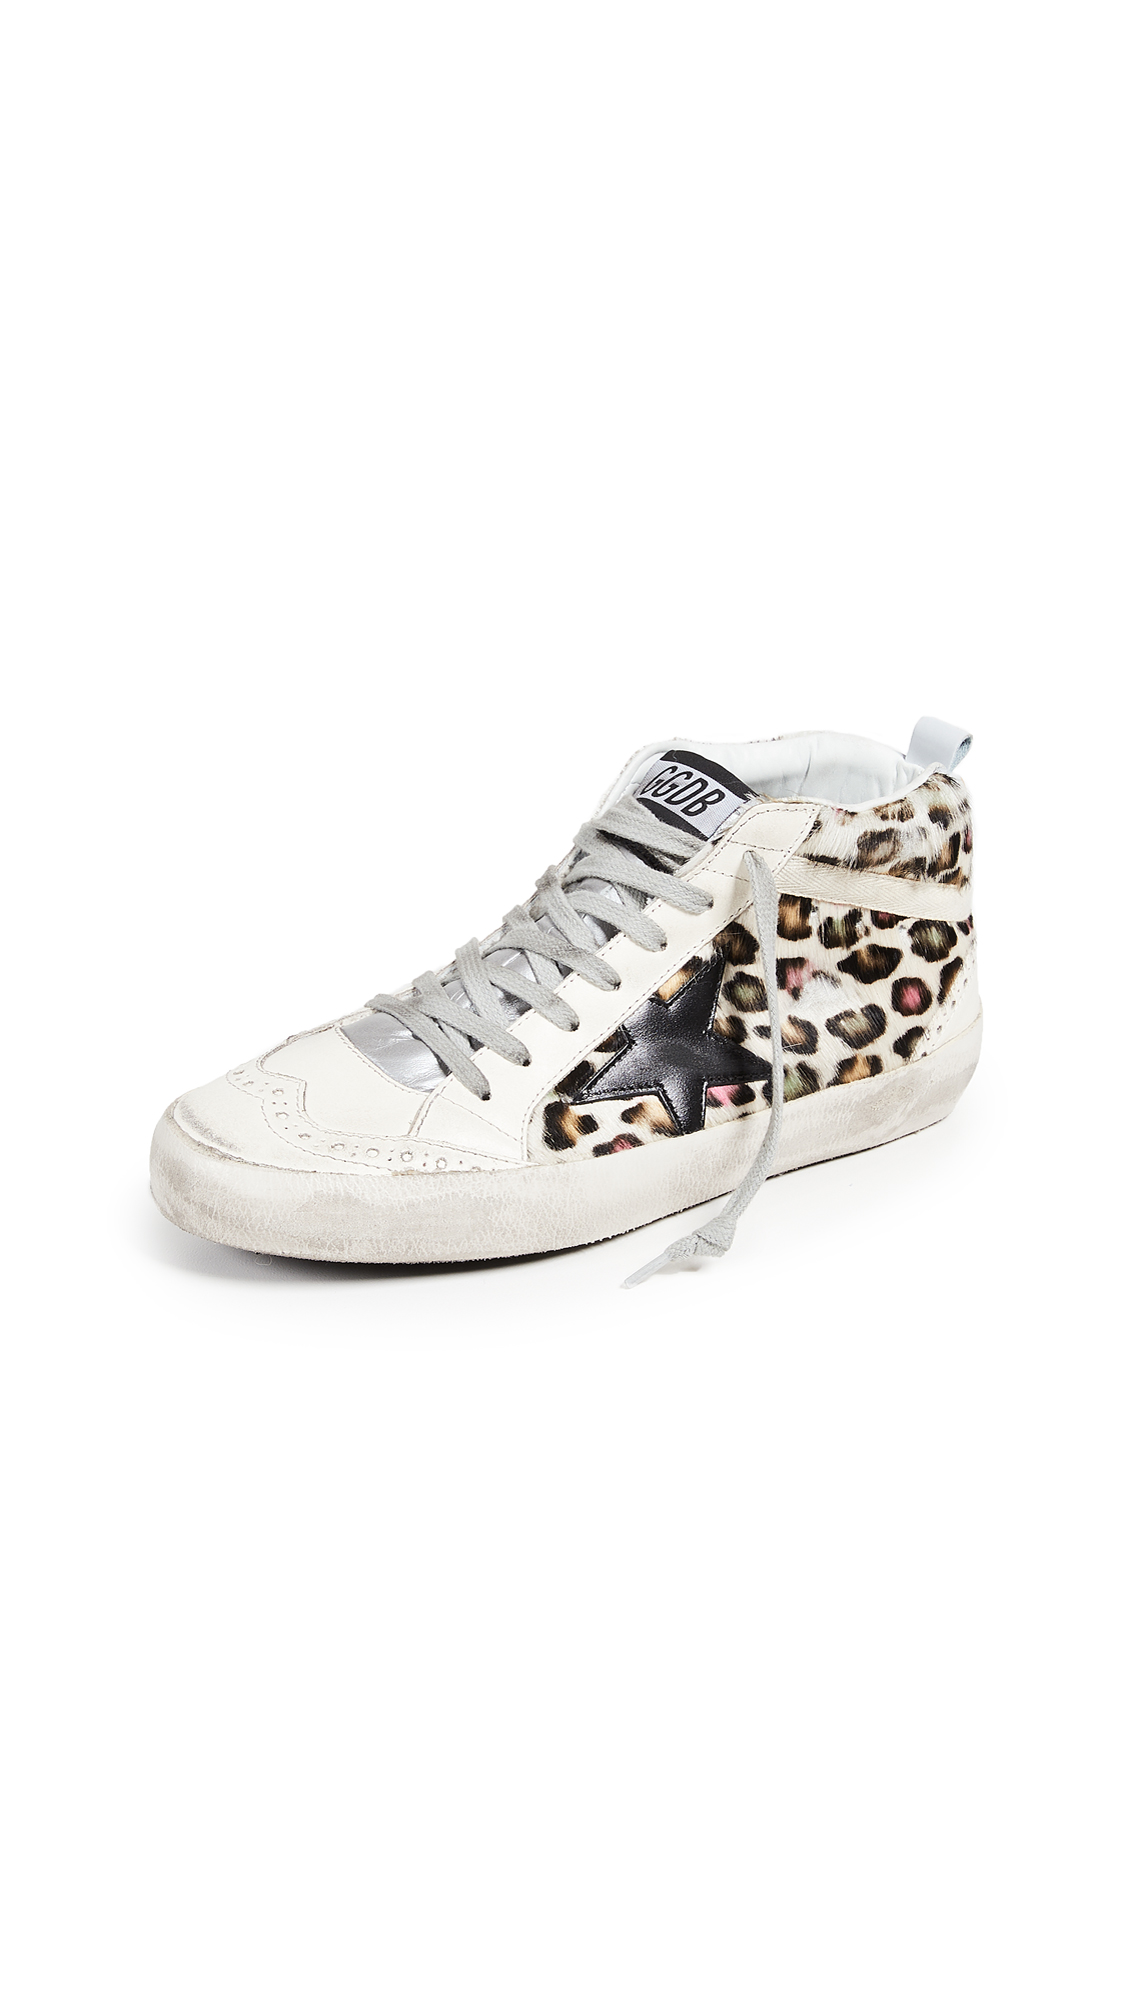 Golden Goose Mid Star Sneakers - Multicolor/Black